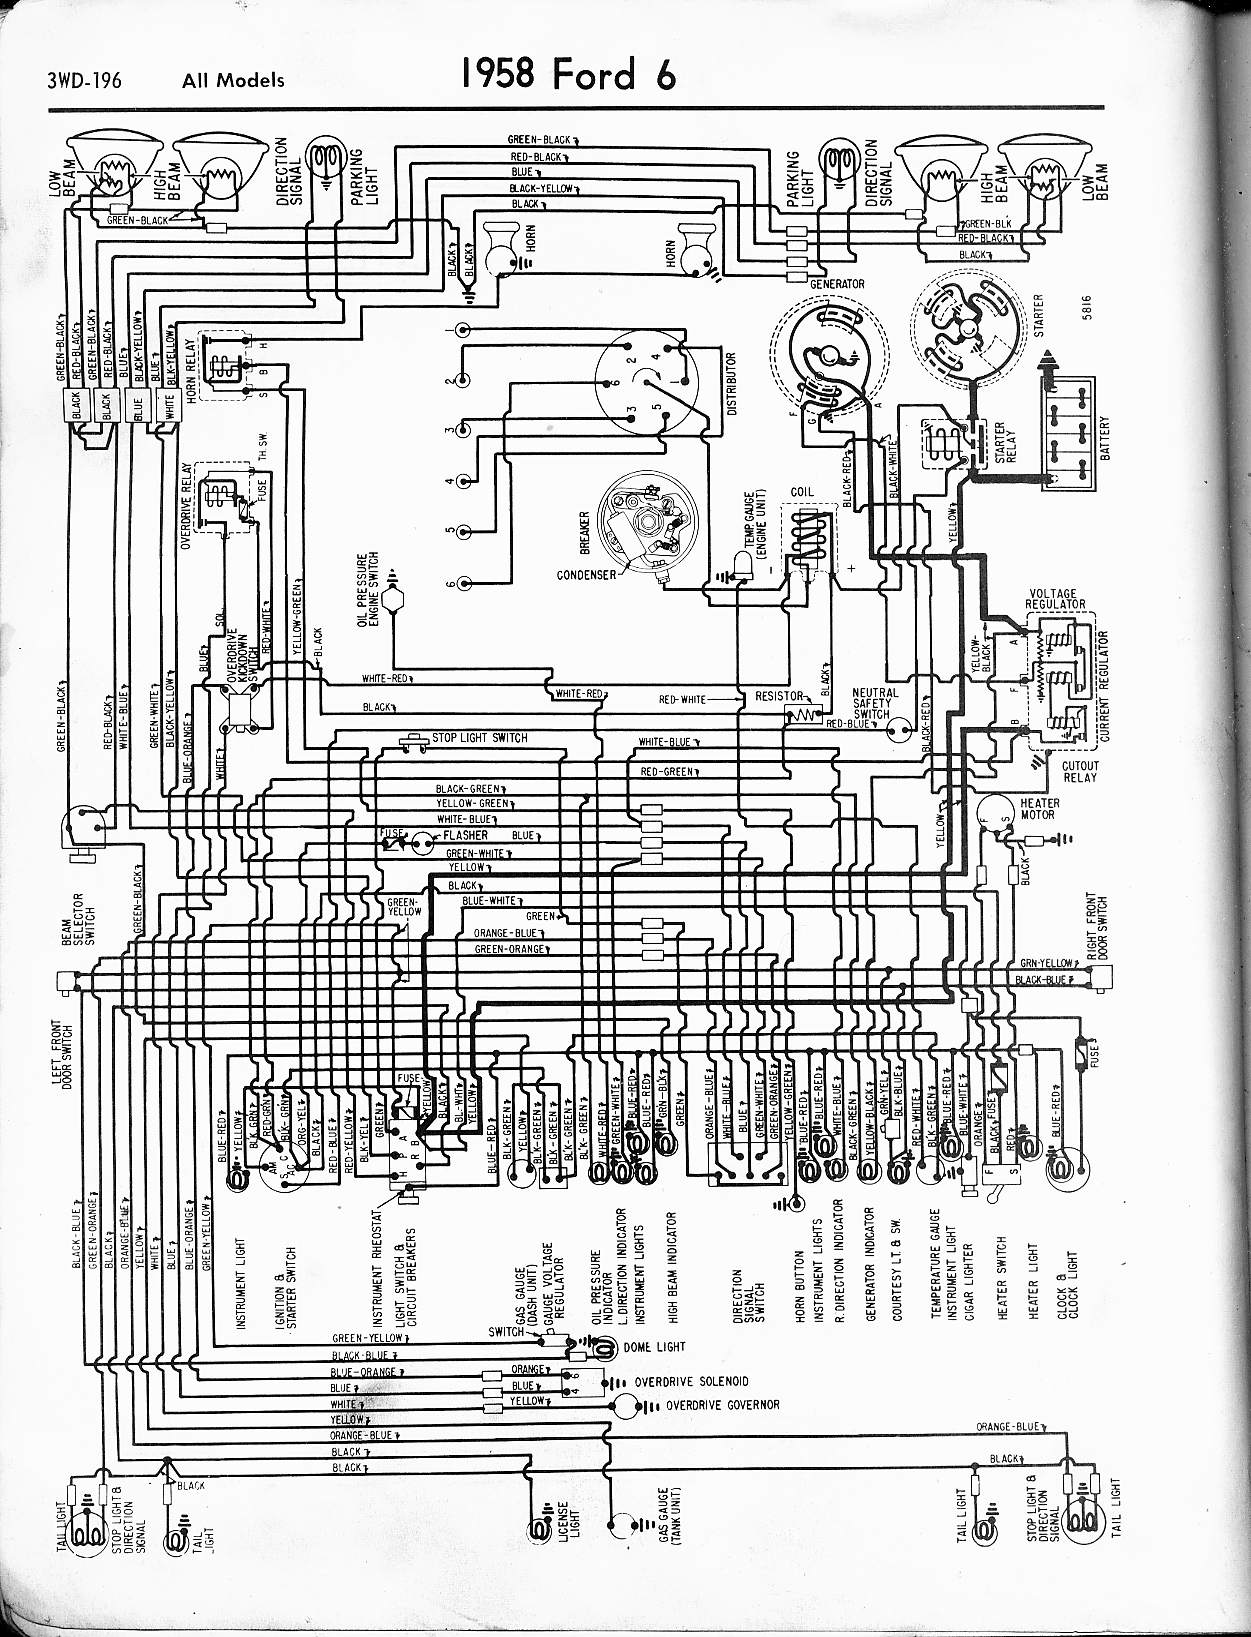 57 65 ford wiring diagrams 1978 Ford Truck Wiring Diagram 1958 6 cyl all models